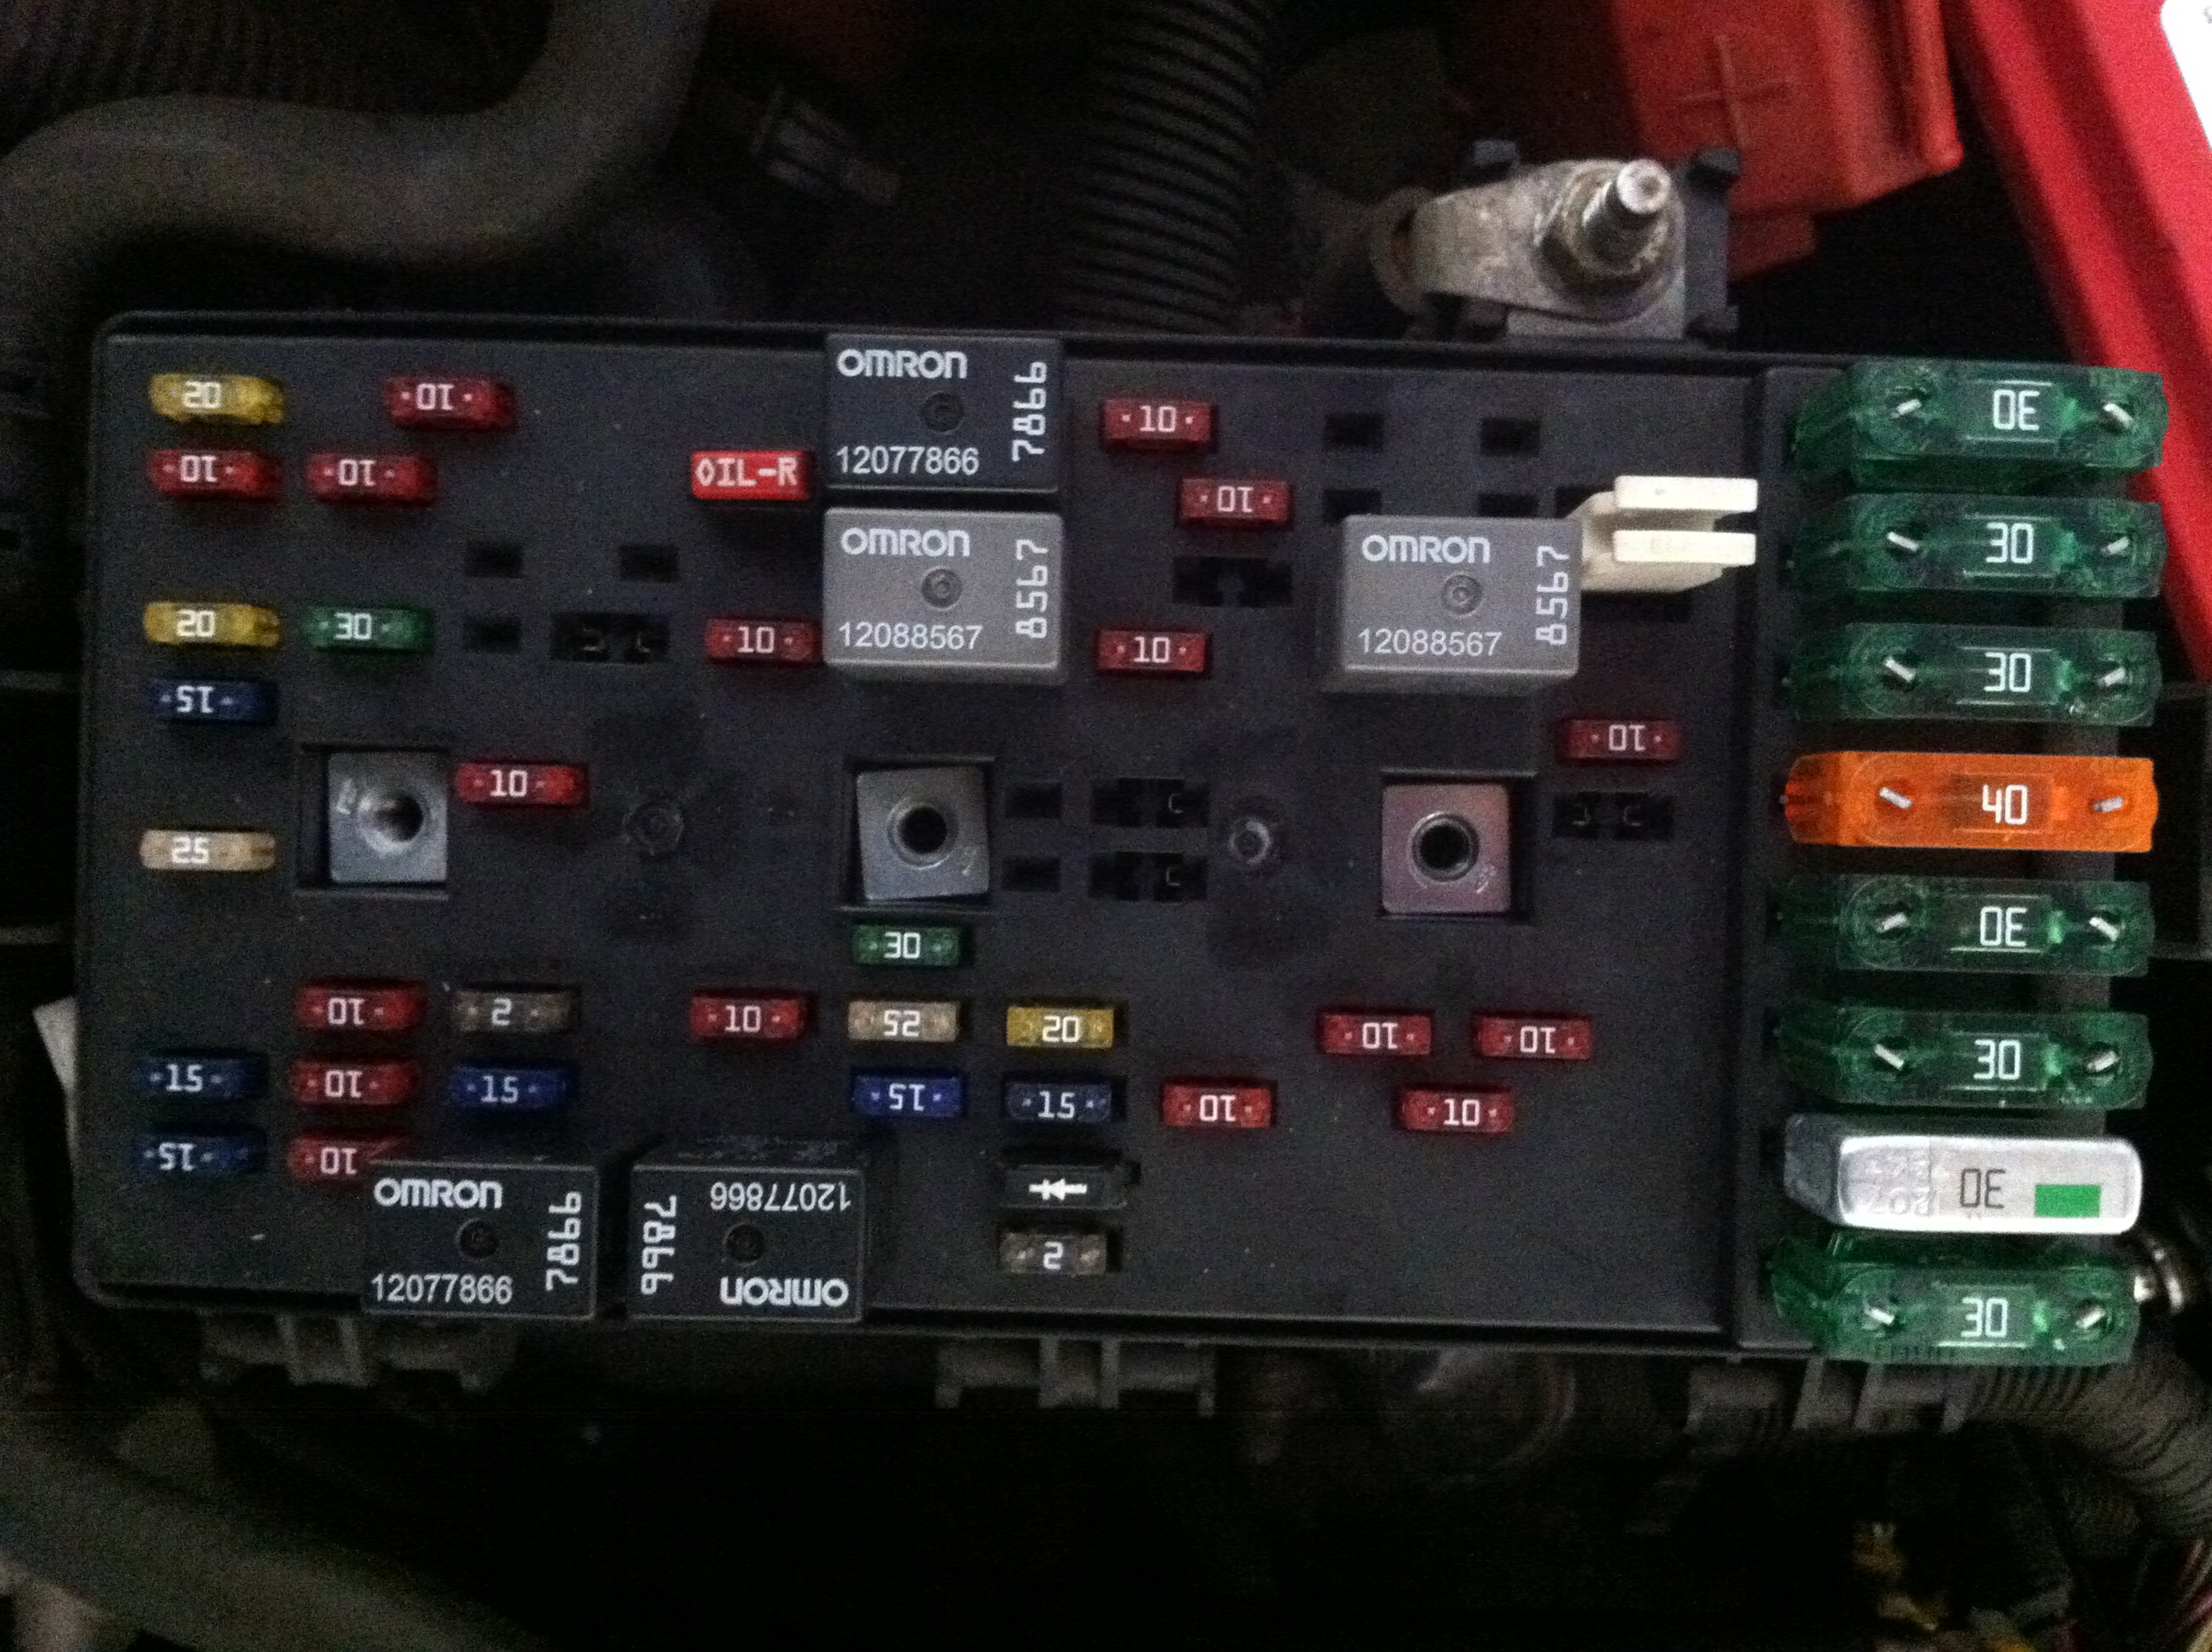 2002 Saturn Fuse Box Another Blog About Wiring Diagram Vue 2003 For L200 Get Free Image Location